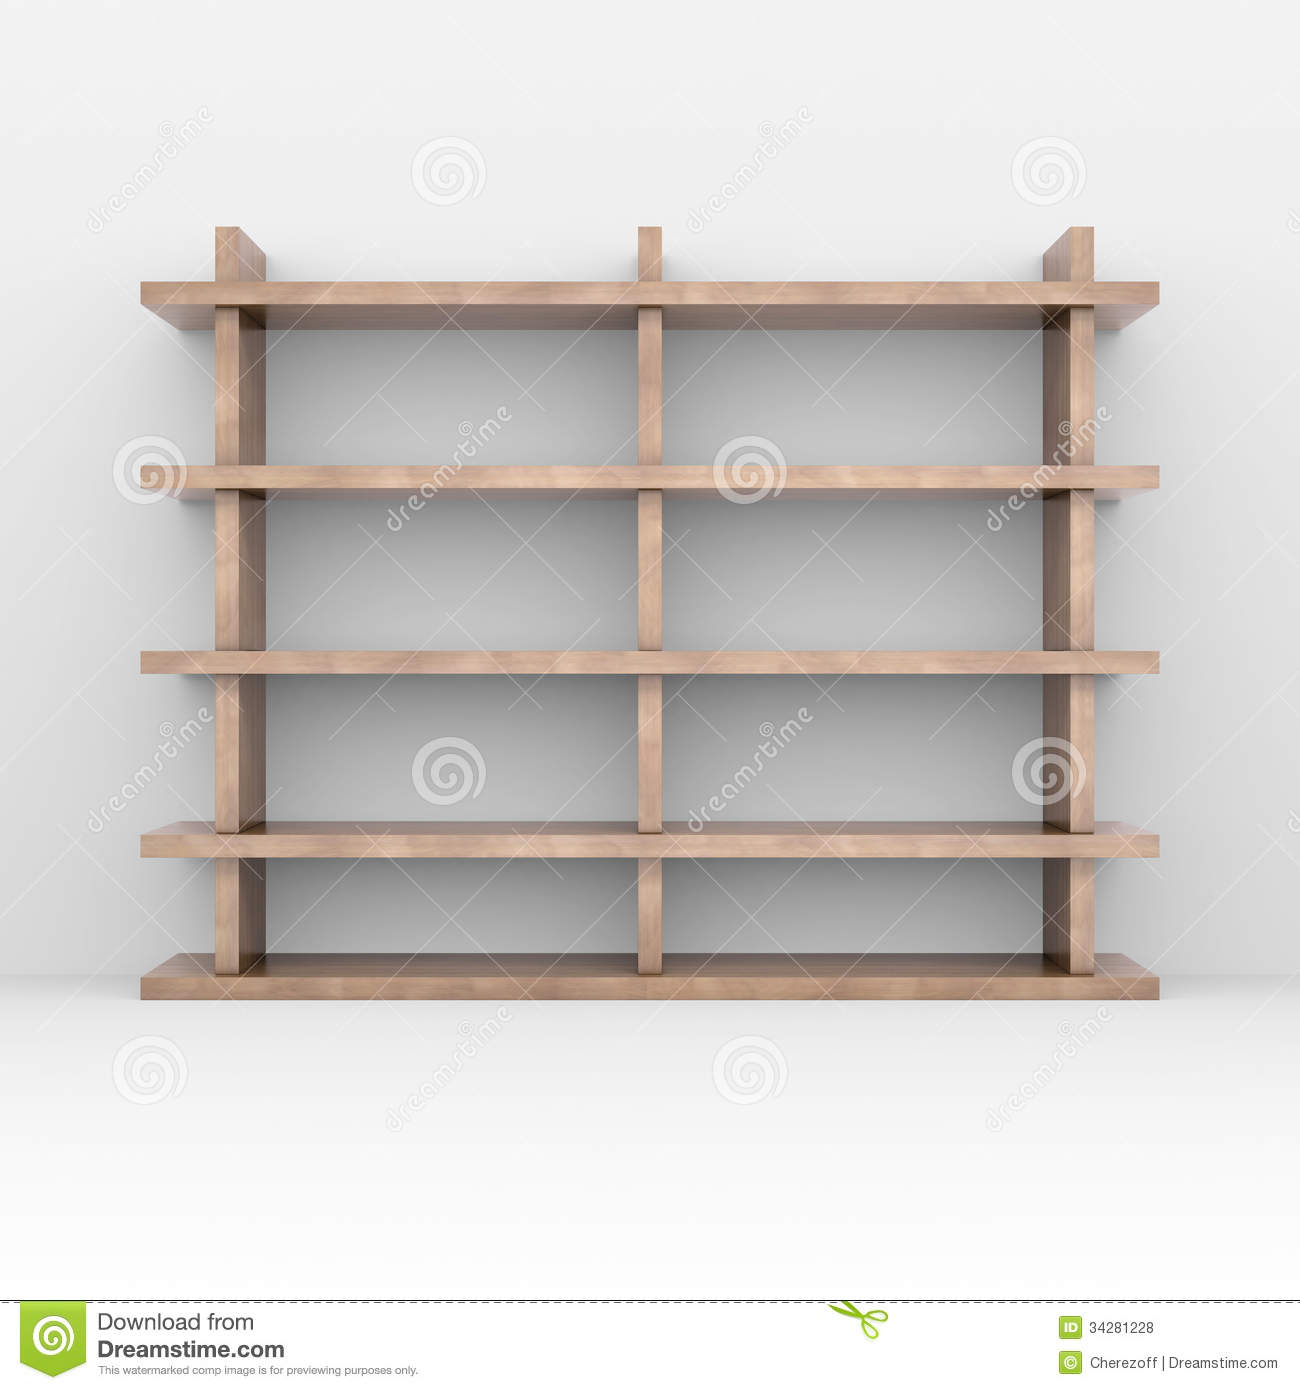 Wooden Shelves Royalty Free Stock Photos - Image: 34281228